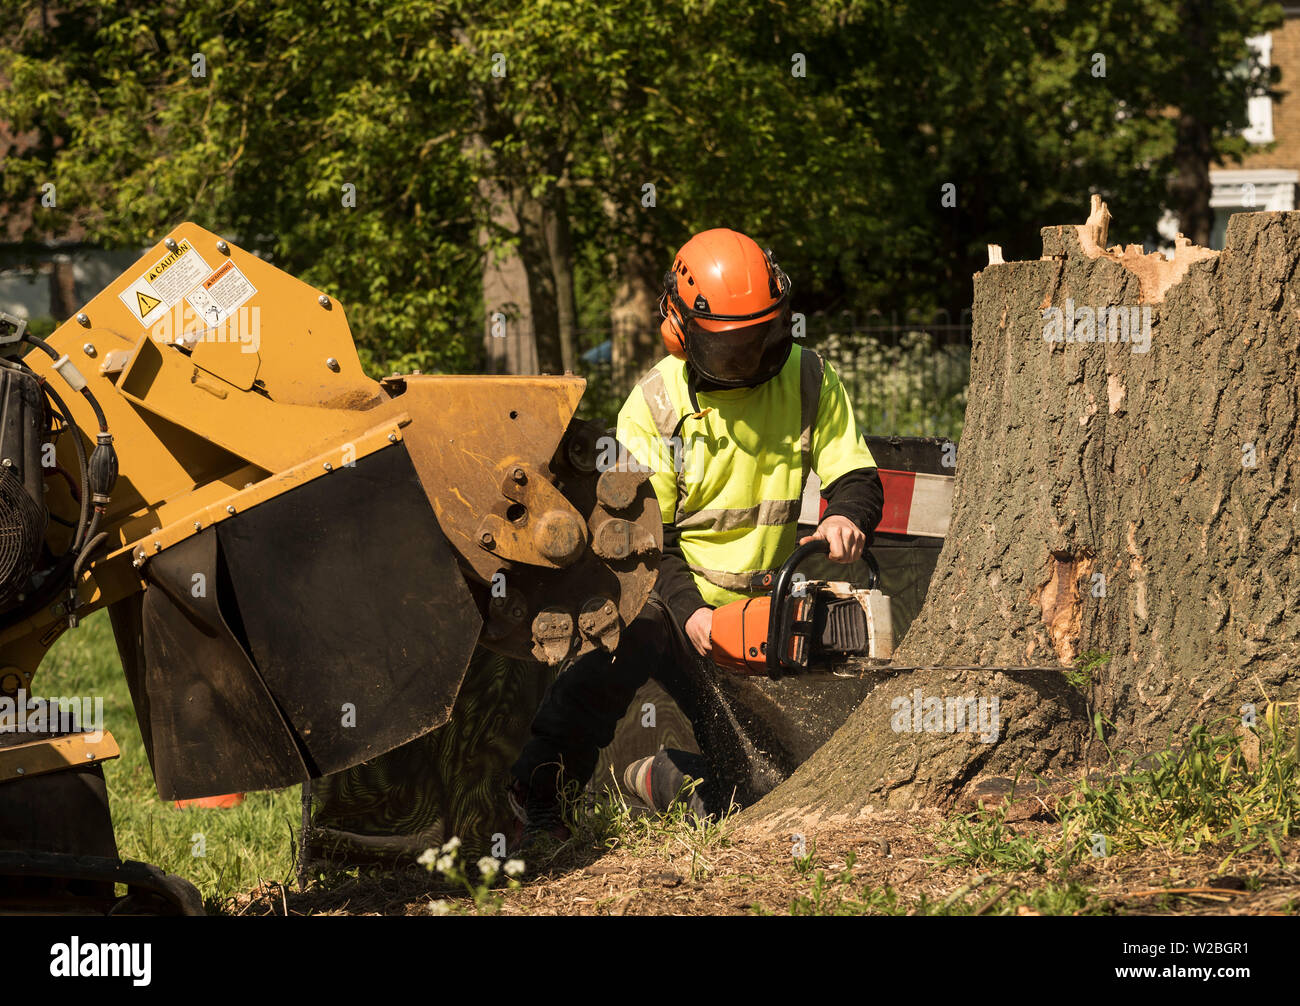 A man in full PPE using a chainsaw to cut a tree stump from it's base. - Stock Image